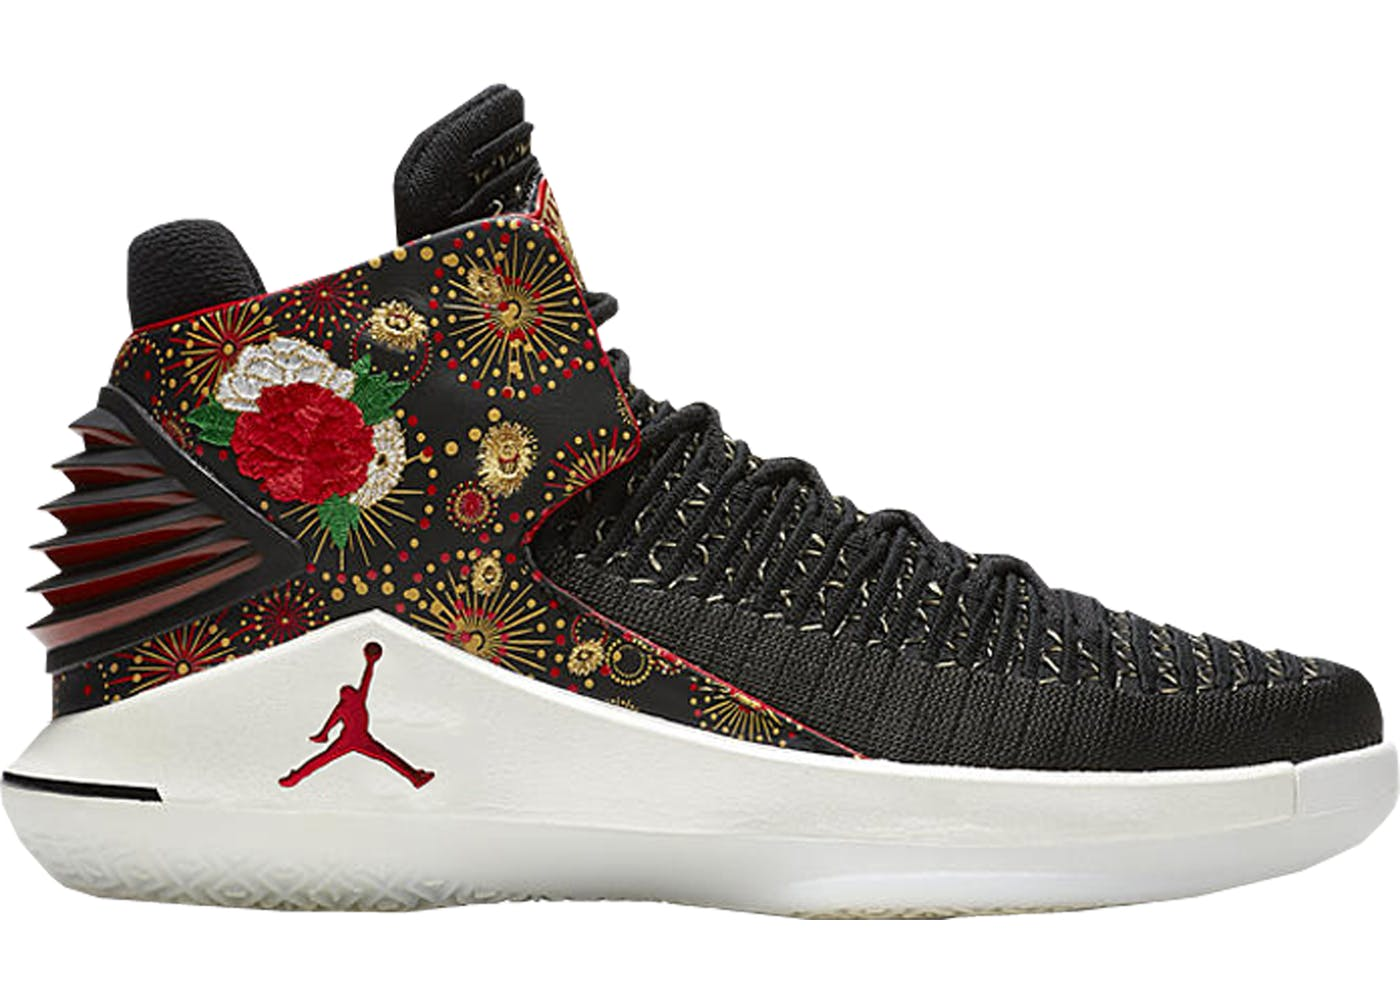 jordan xxxii chinese new year 2018 - Jordan Chinese New Year